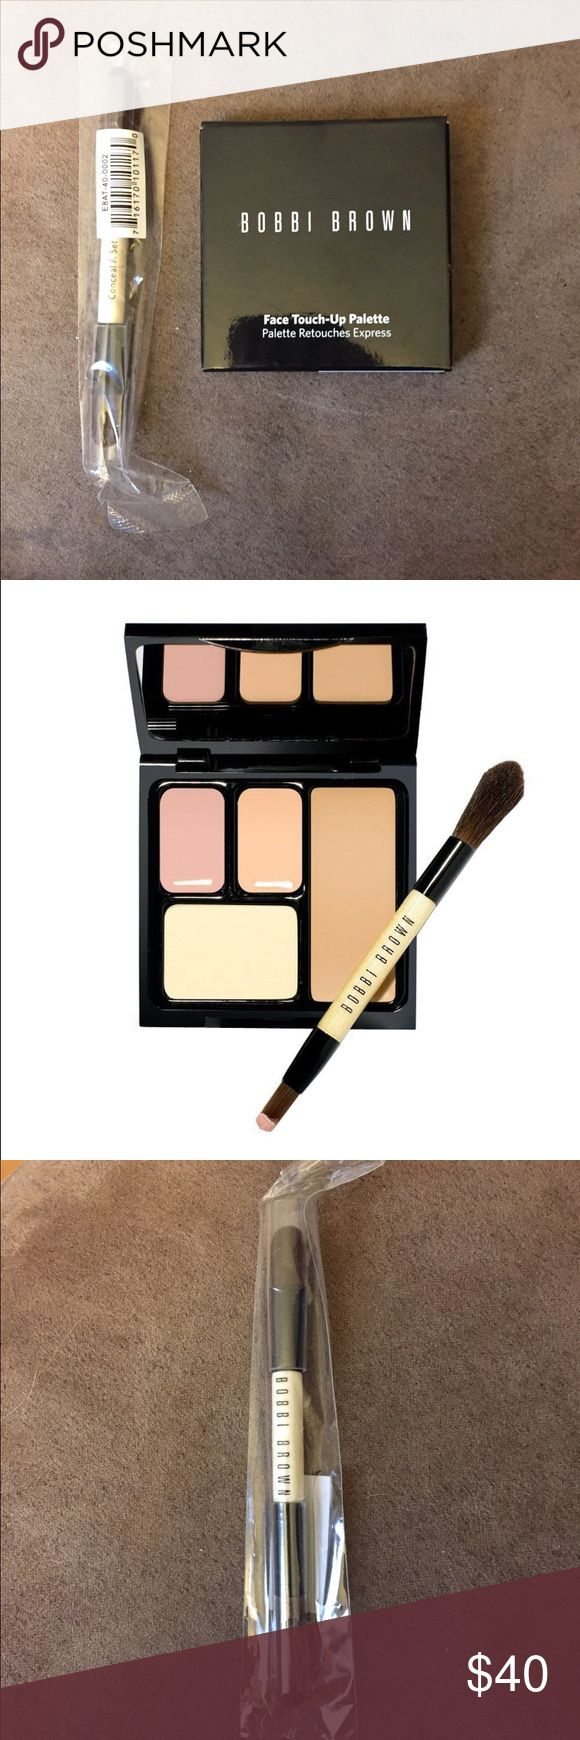 NWT Bobbi Brown face touch up palette NWT never opened Bobbi Brown face touch up palette. Foundation stick in Sand, Corrector in Light Bisque, Creamy concealer in Sand, and sheer finish pressed powder in Pale Yellow. Comes with small conceal and set brush. Perfect for your handbag or travel! Bobbi Brown Makeup Foundation